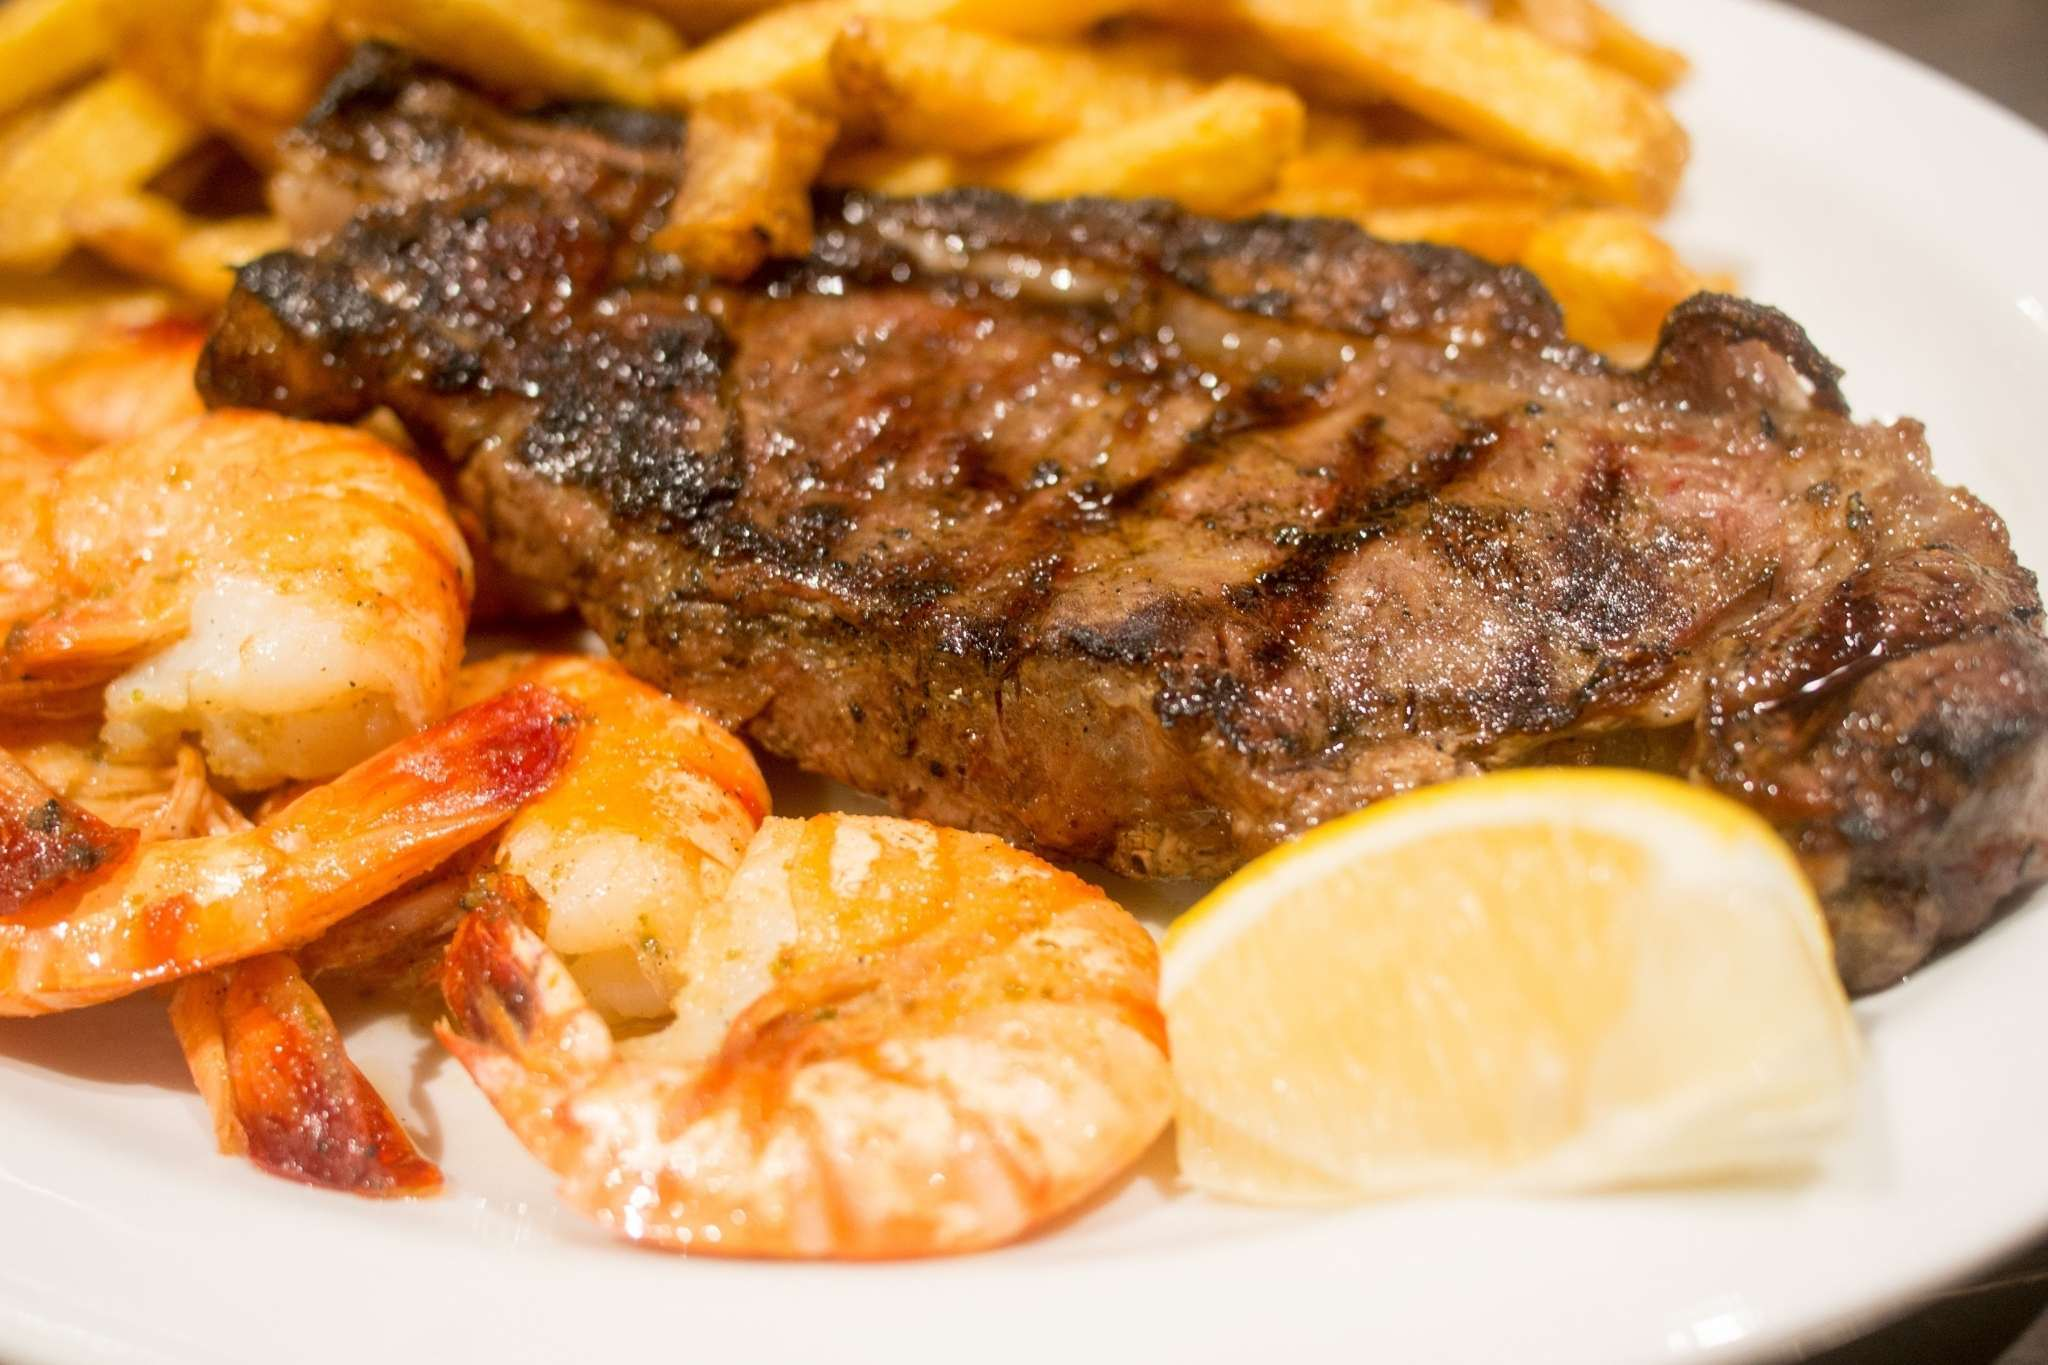 Steak, shrimp, French fries, and lemon wedge on a plate